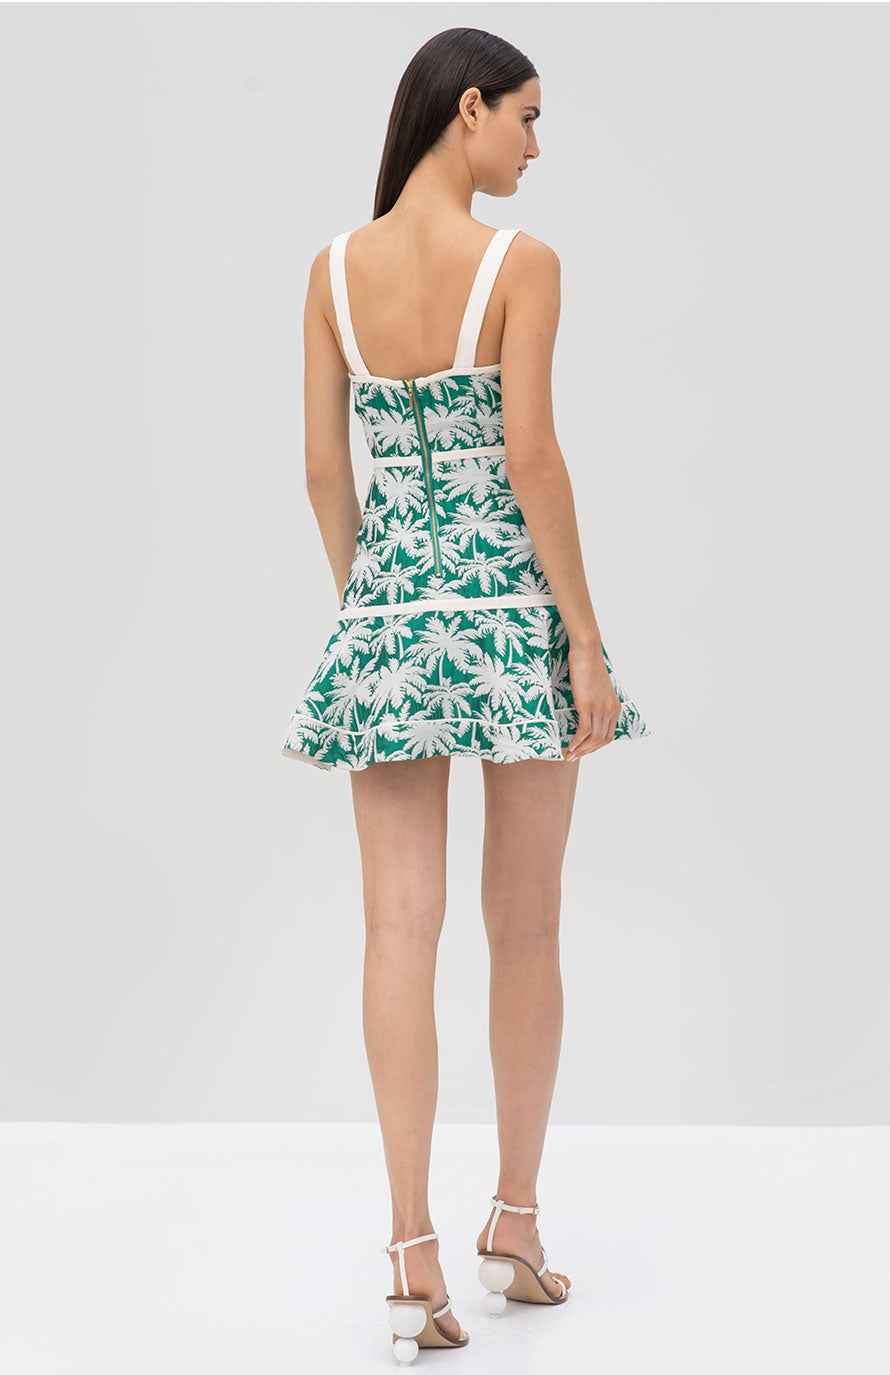 Alexis Lisel Dress Green Palm Jacquard - Rear View